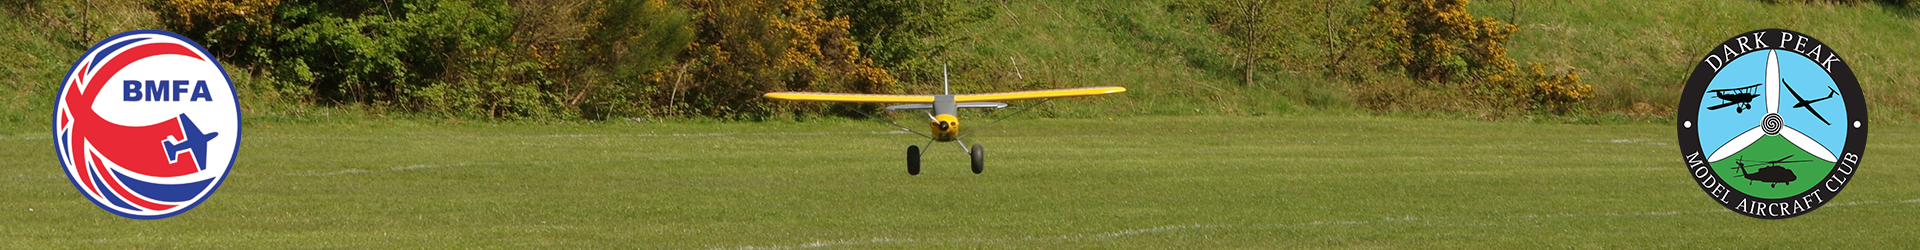 Dark Peak Model Aircraft Club